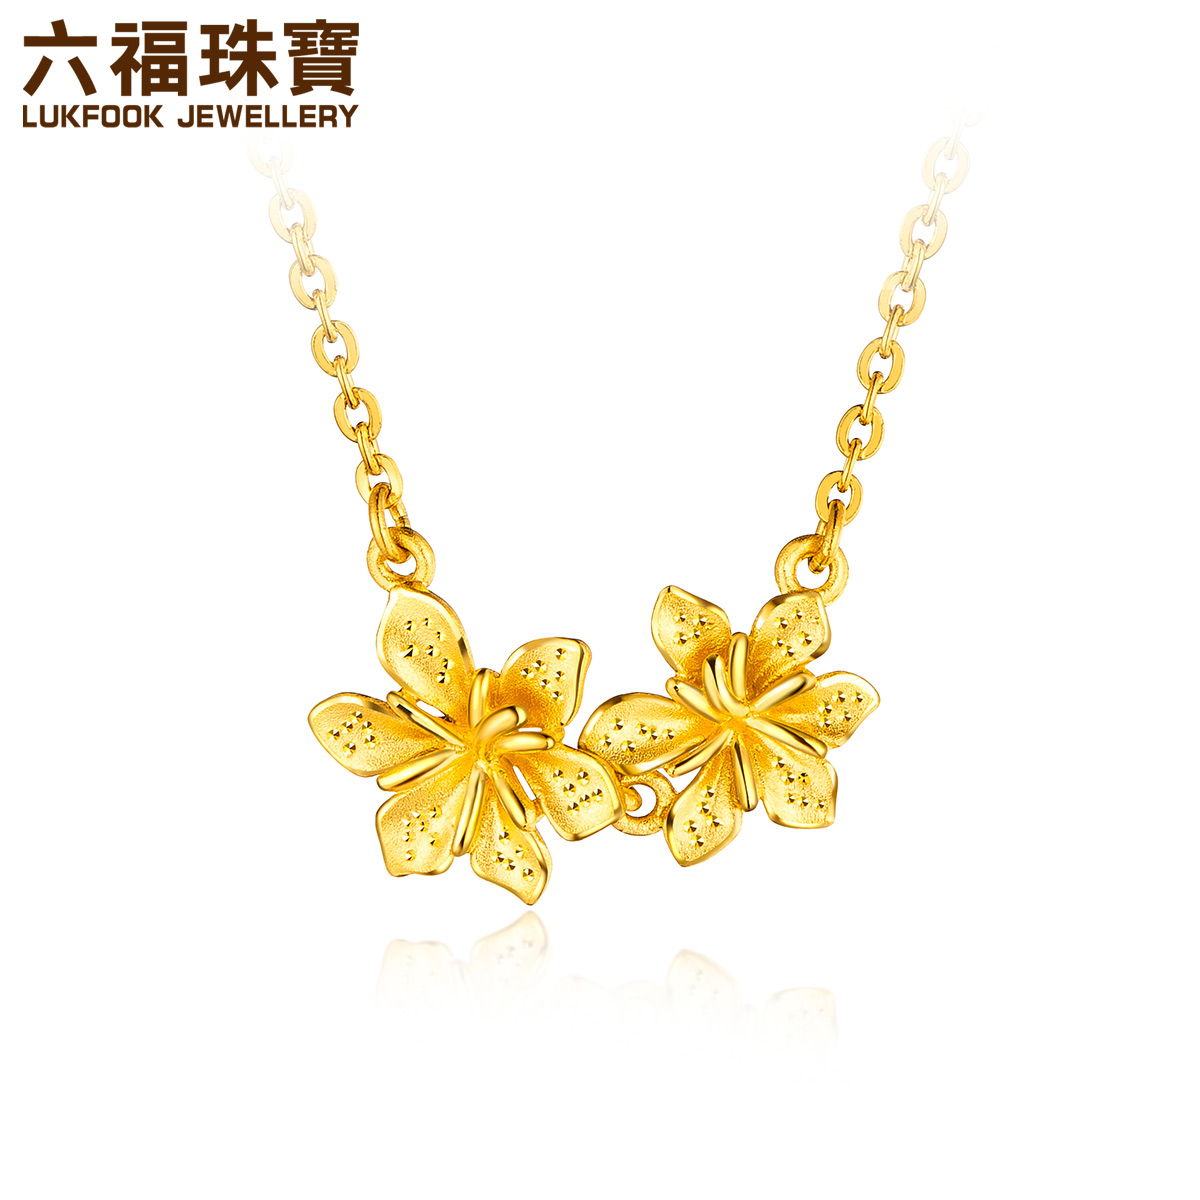 Usd 46586 luk fook jewellery gardenia solid gold pendant gold luk fook jewellery gardenia solid gold pendant gold necklace pendants female sets of chains containing pendant aloadofball Gallery